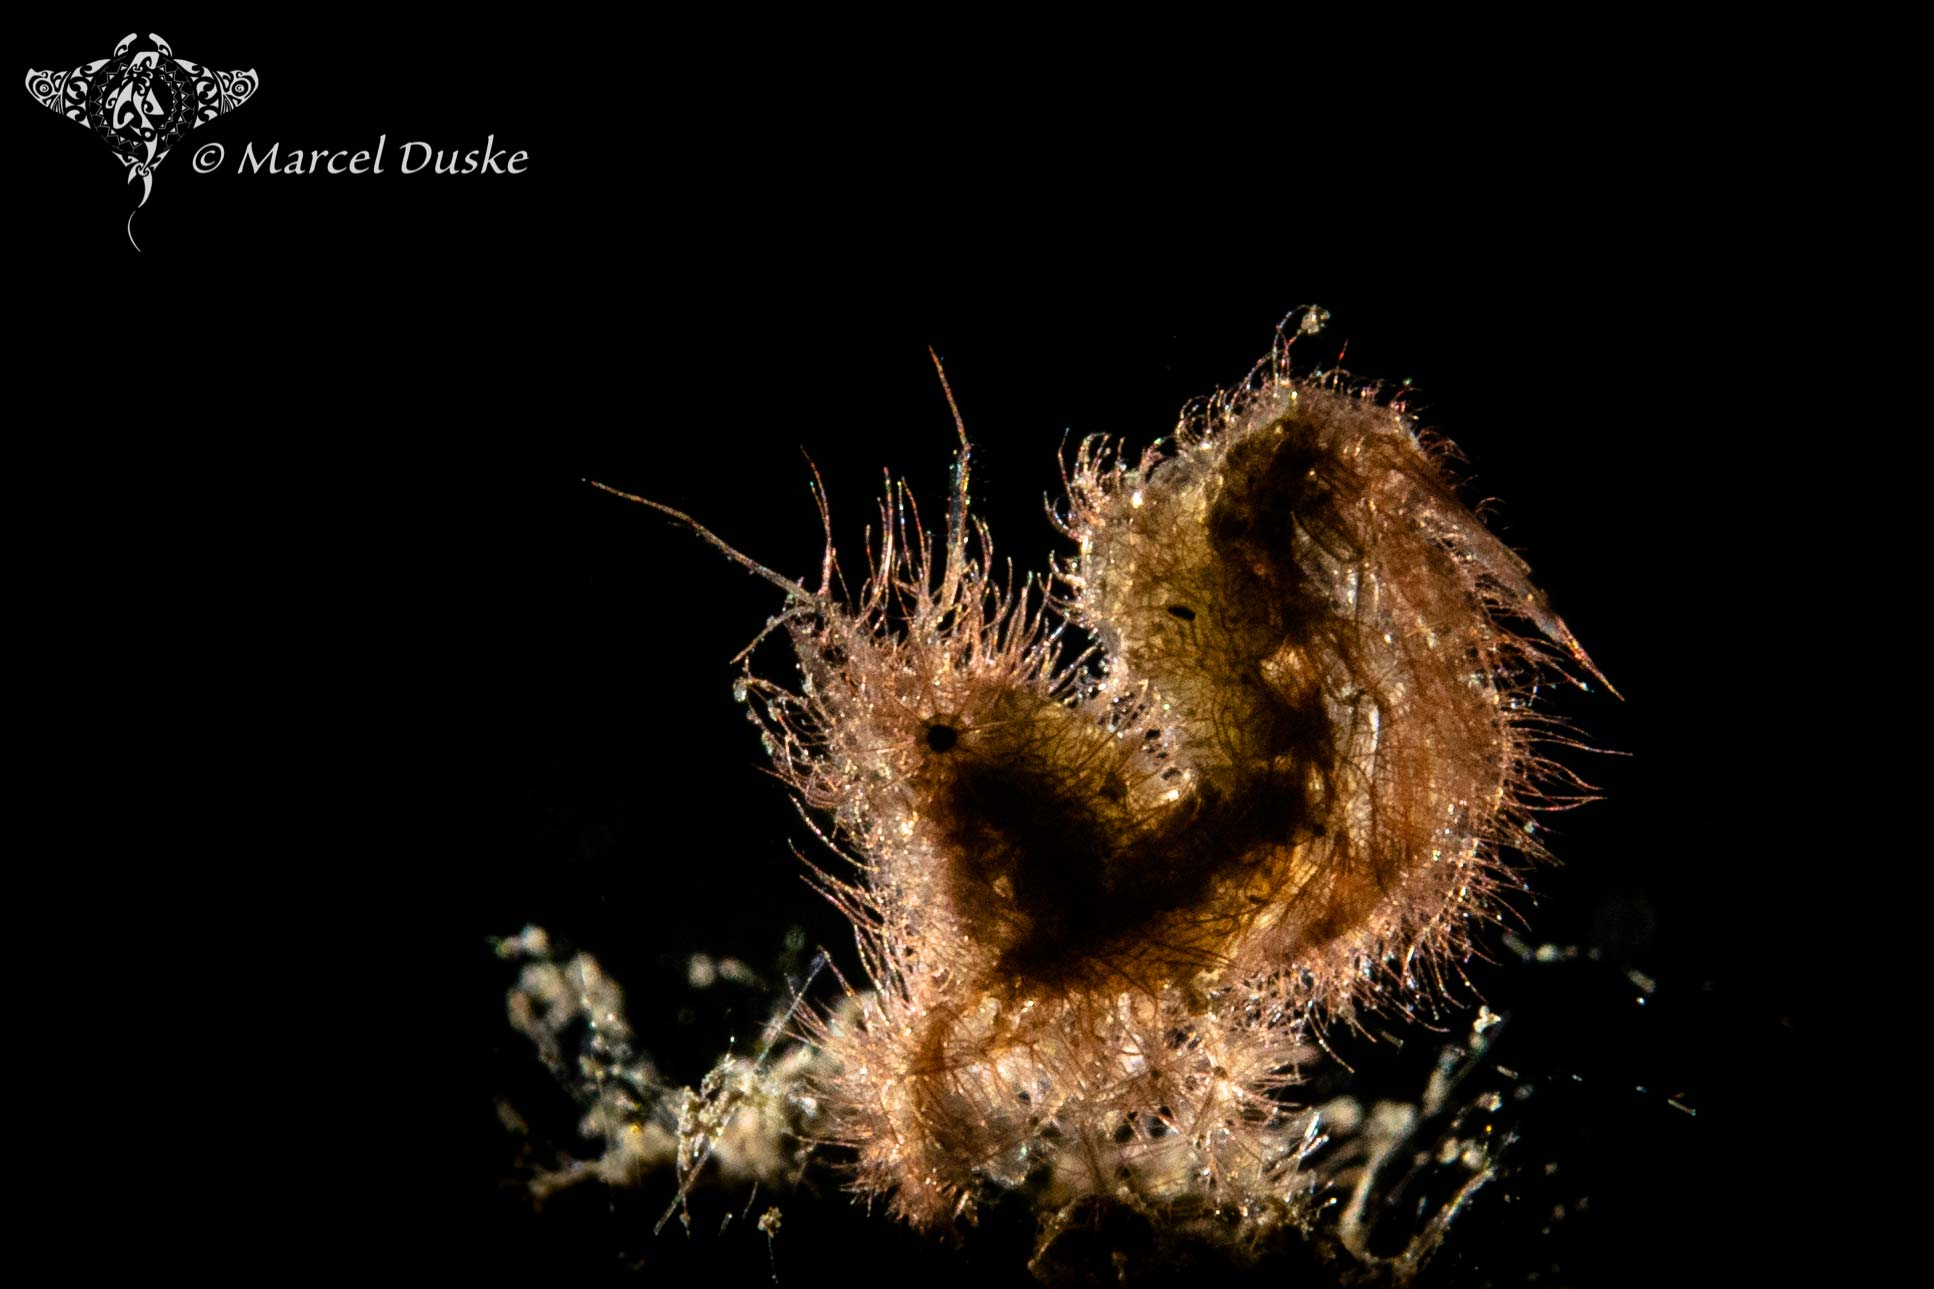 Hairy shrimp or phycocaris simulans is also called Algae Shrimp, Photo: Marcel Duske (July 2019)